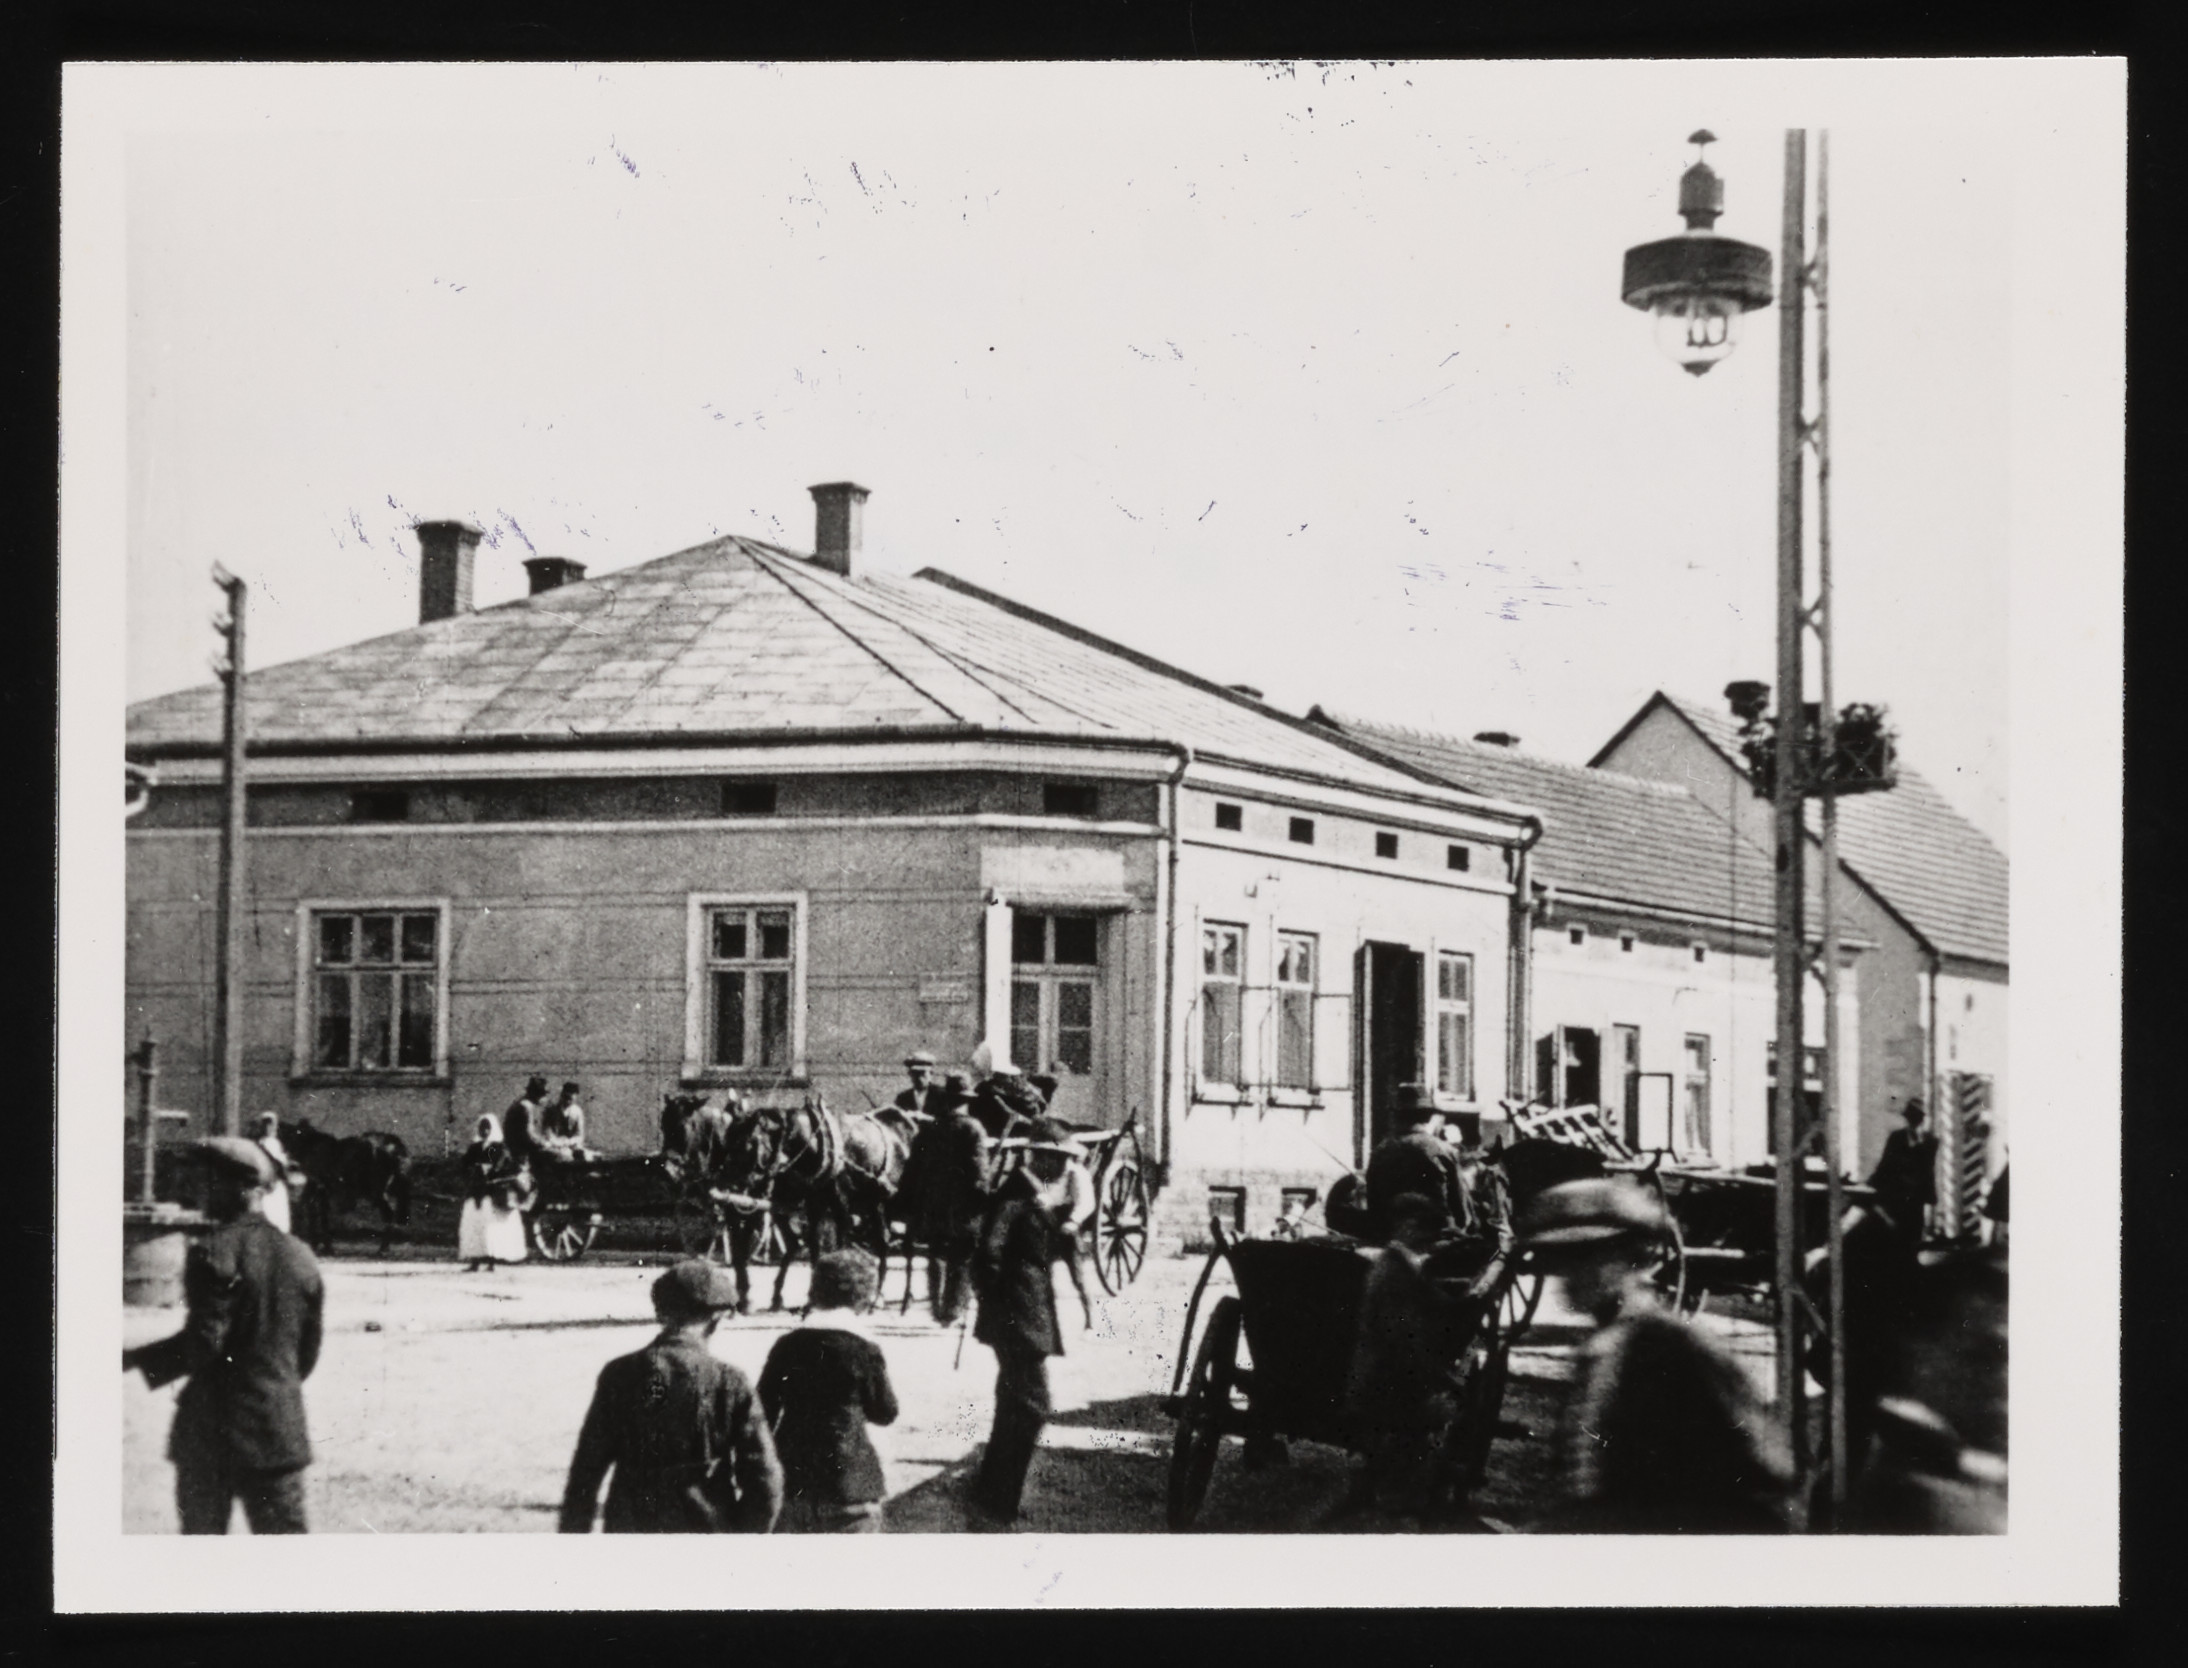 View of the central square in Kolbuszowa showing one of the three street lights that illuminated the town.